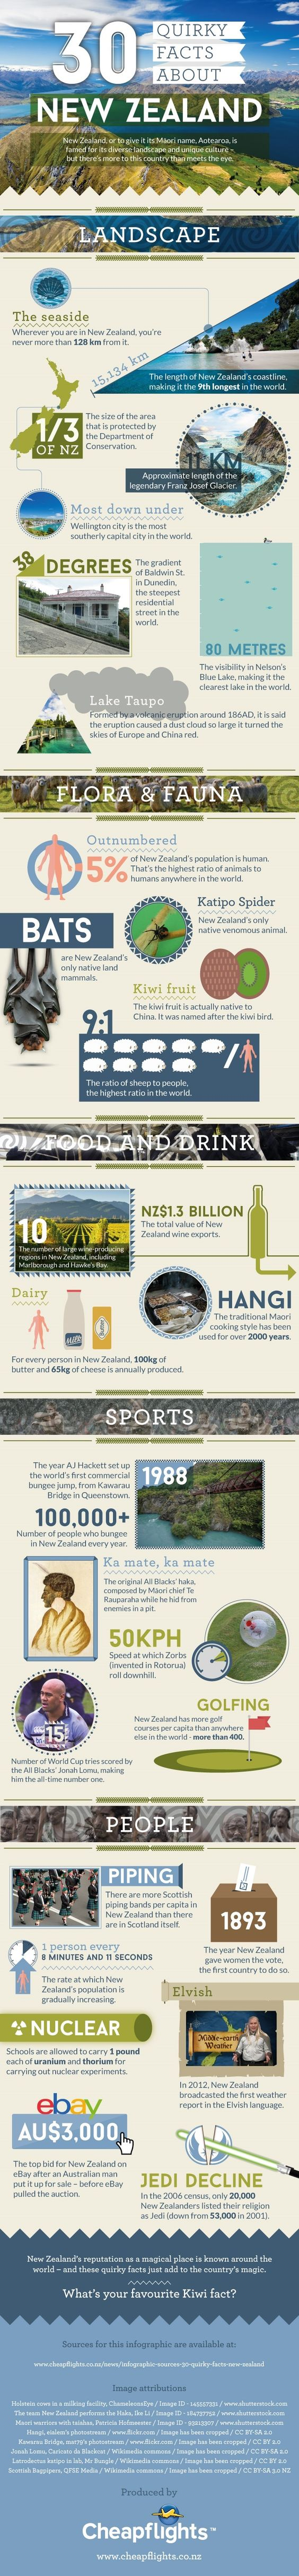 30 Quirky Facts About New Zealand (Infographic)